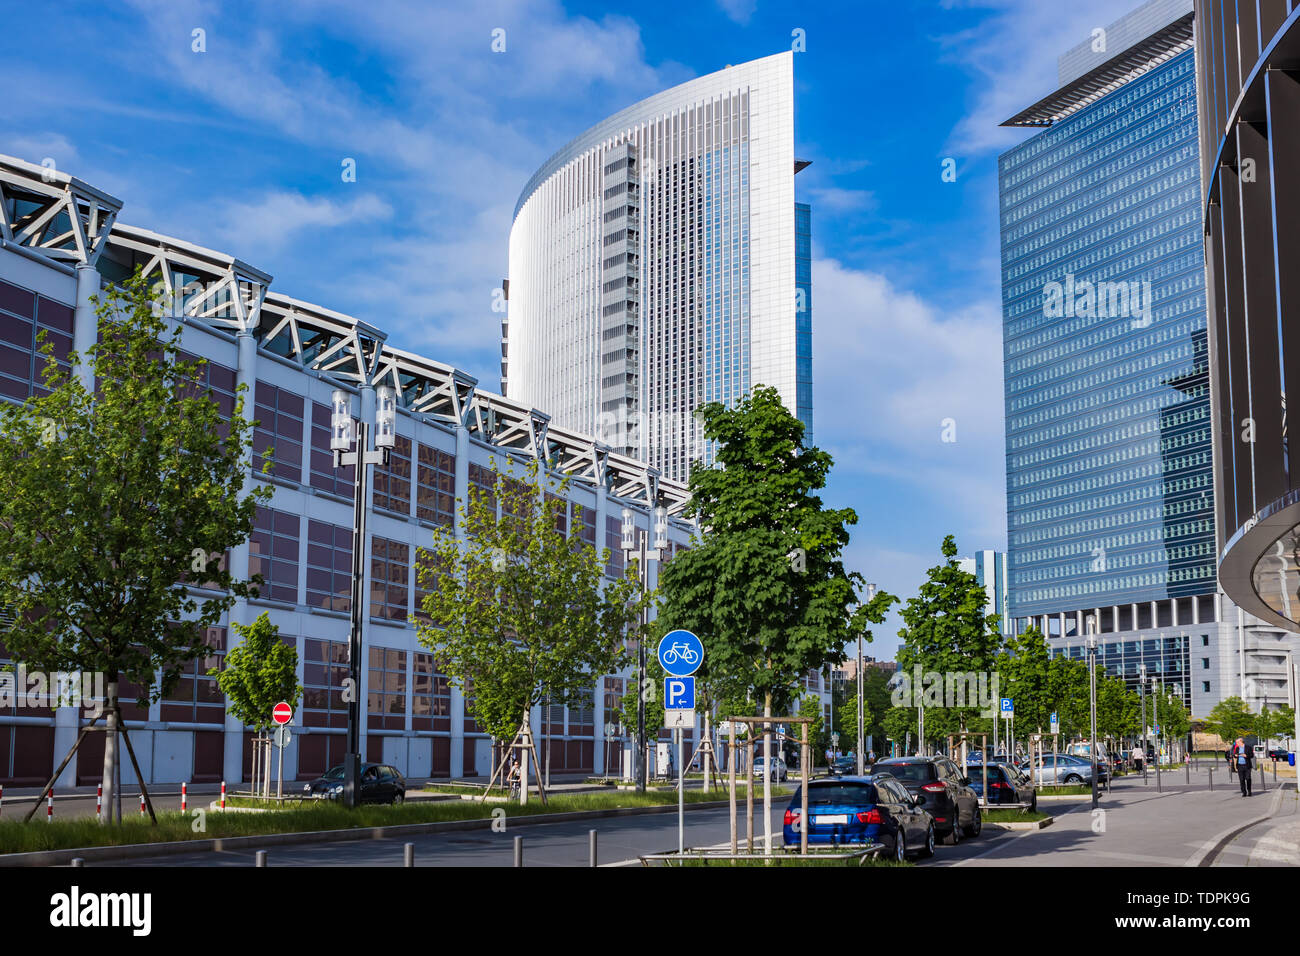 Tall Buildings of a street in the urban area of Frankfurt Germany - Stock Image